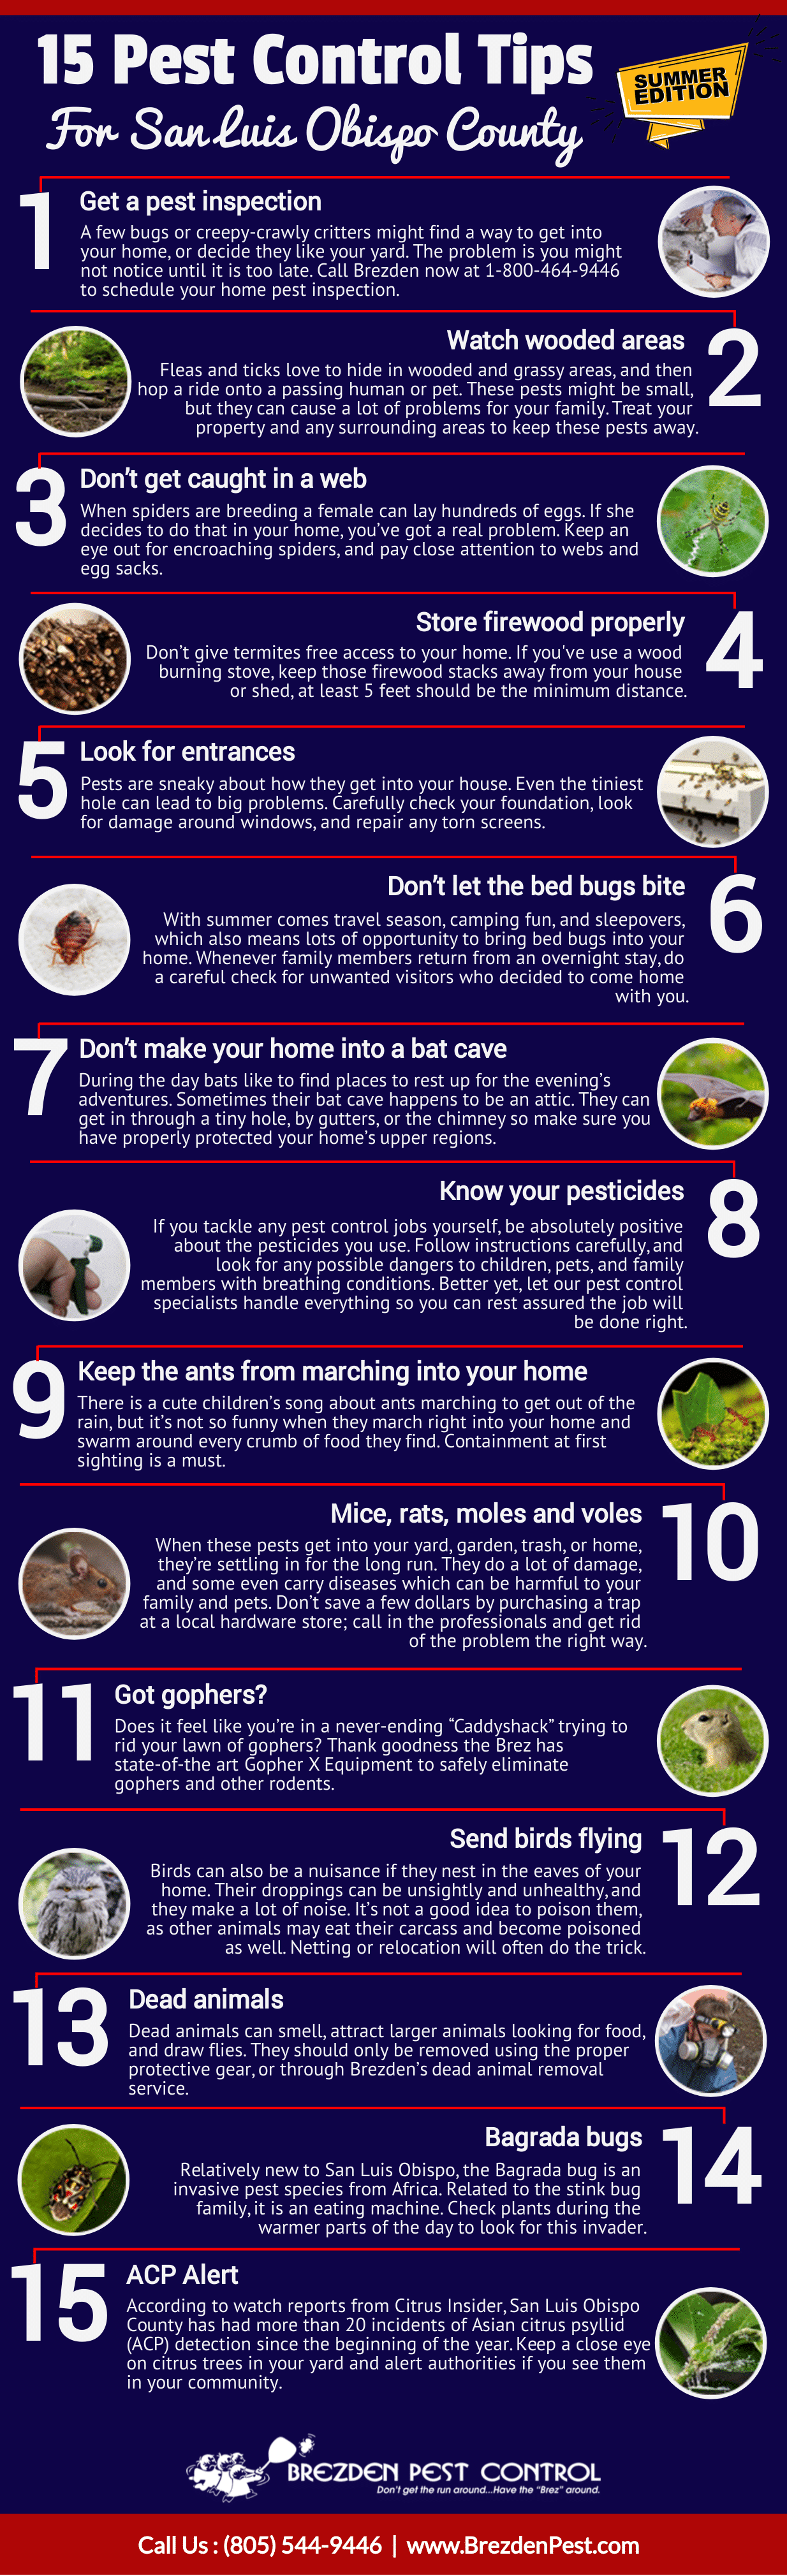 15 Pest Control Tips For San Luis Obispo County: Summer Season